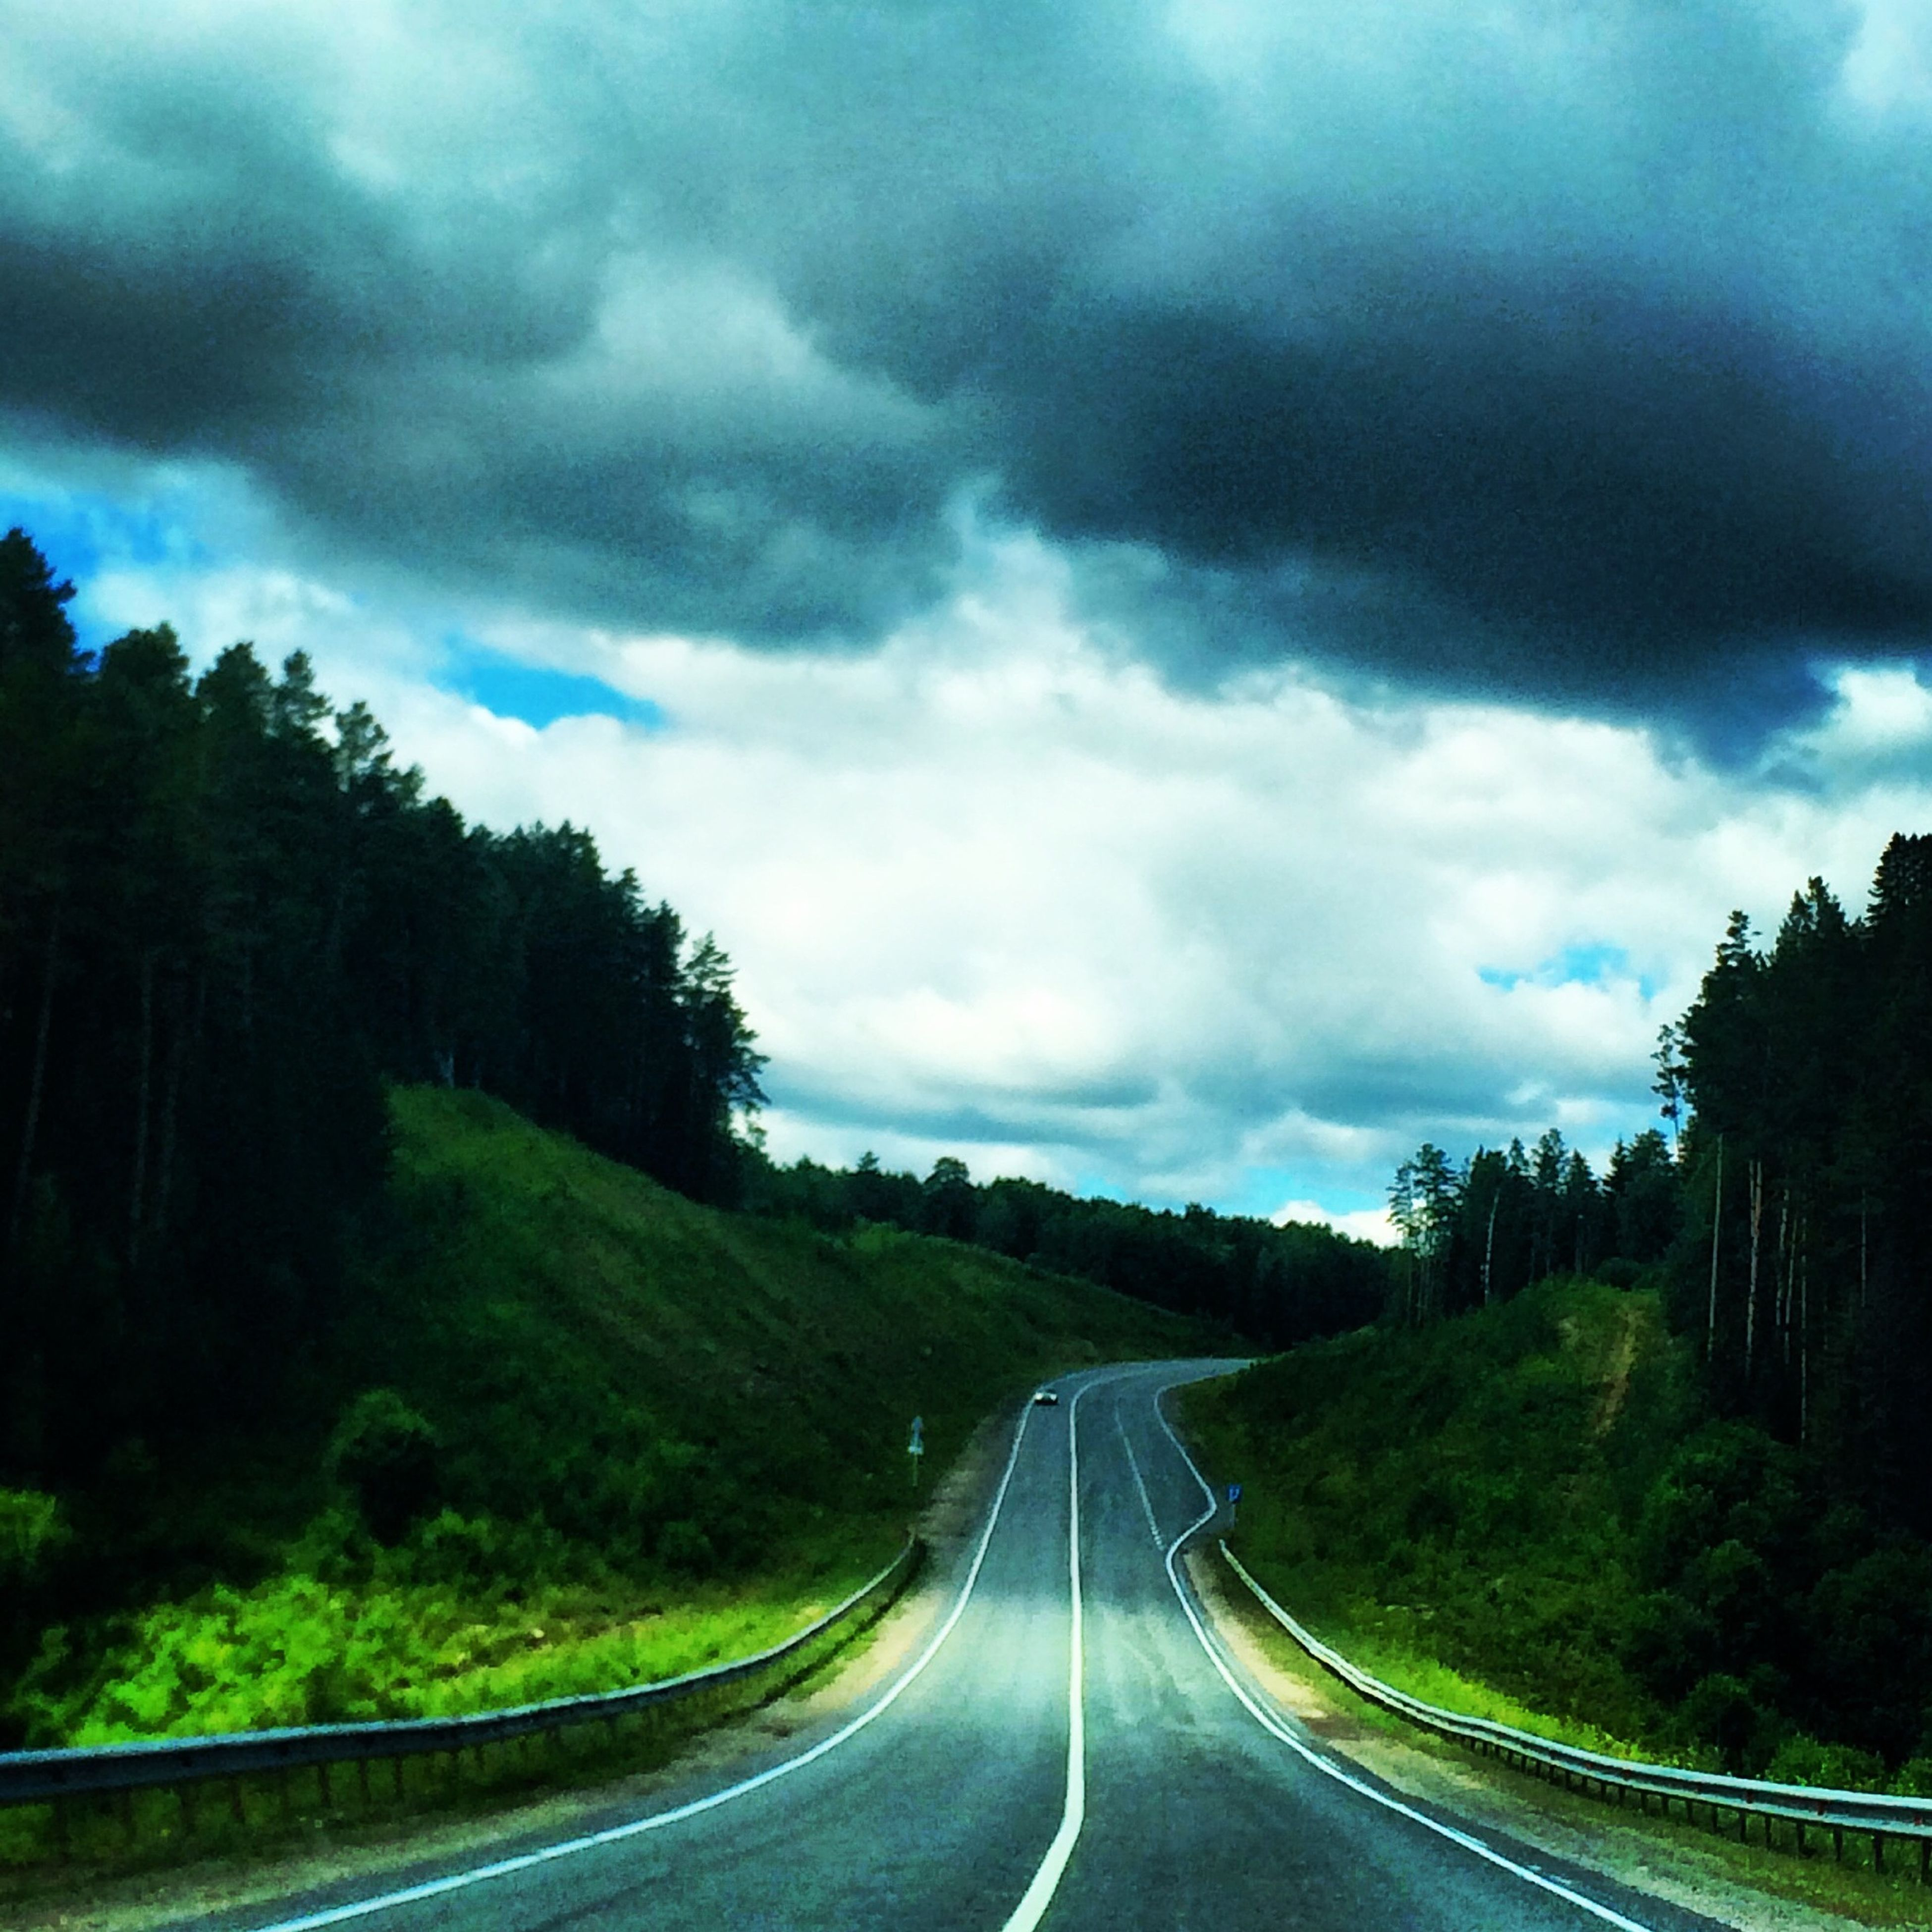 the way forward, transportation, road, diminishing perspective, sky, vanishing point, cloud - sky, tree, cloudy, road marking, country road, cloud, nature, storm cloud, weather, highway, empty road, tranquility, beauty in nature, tranquil scene